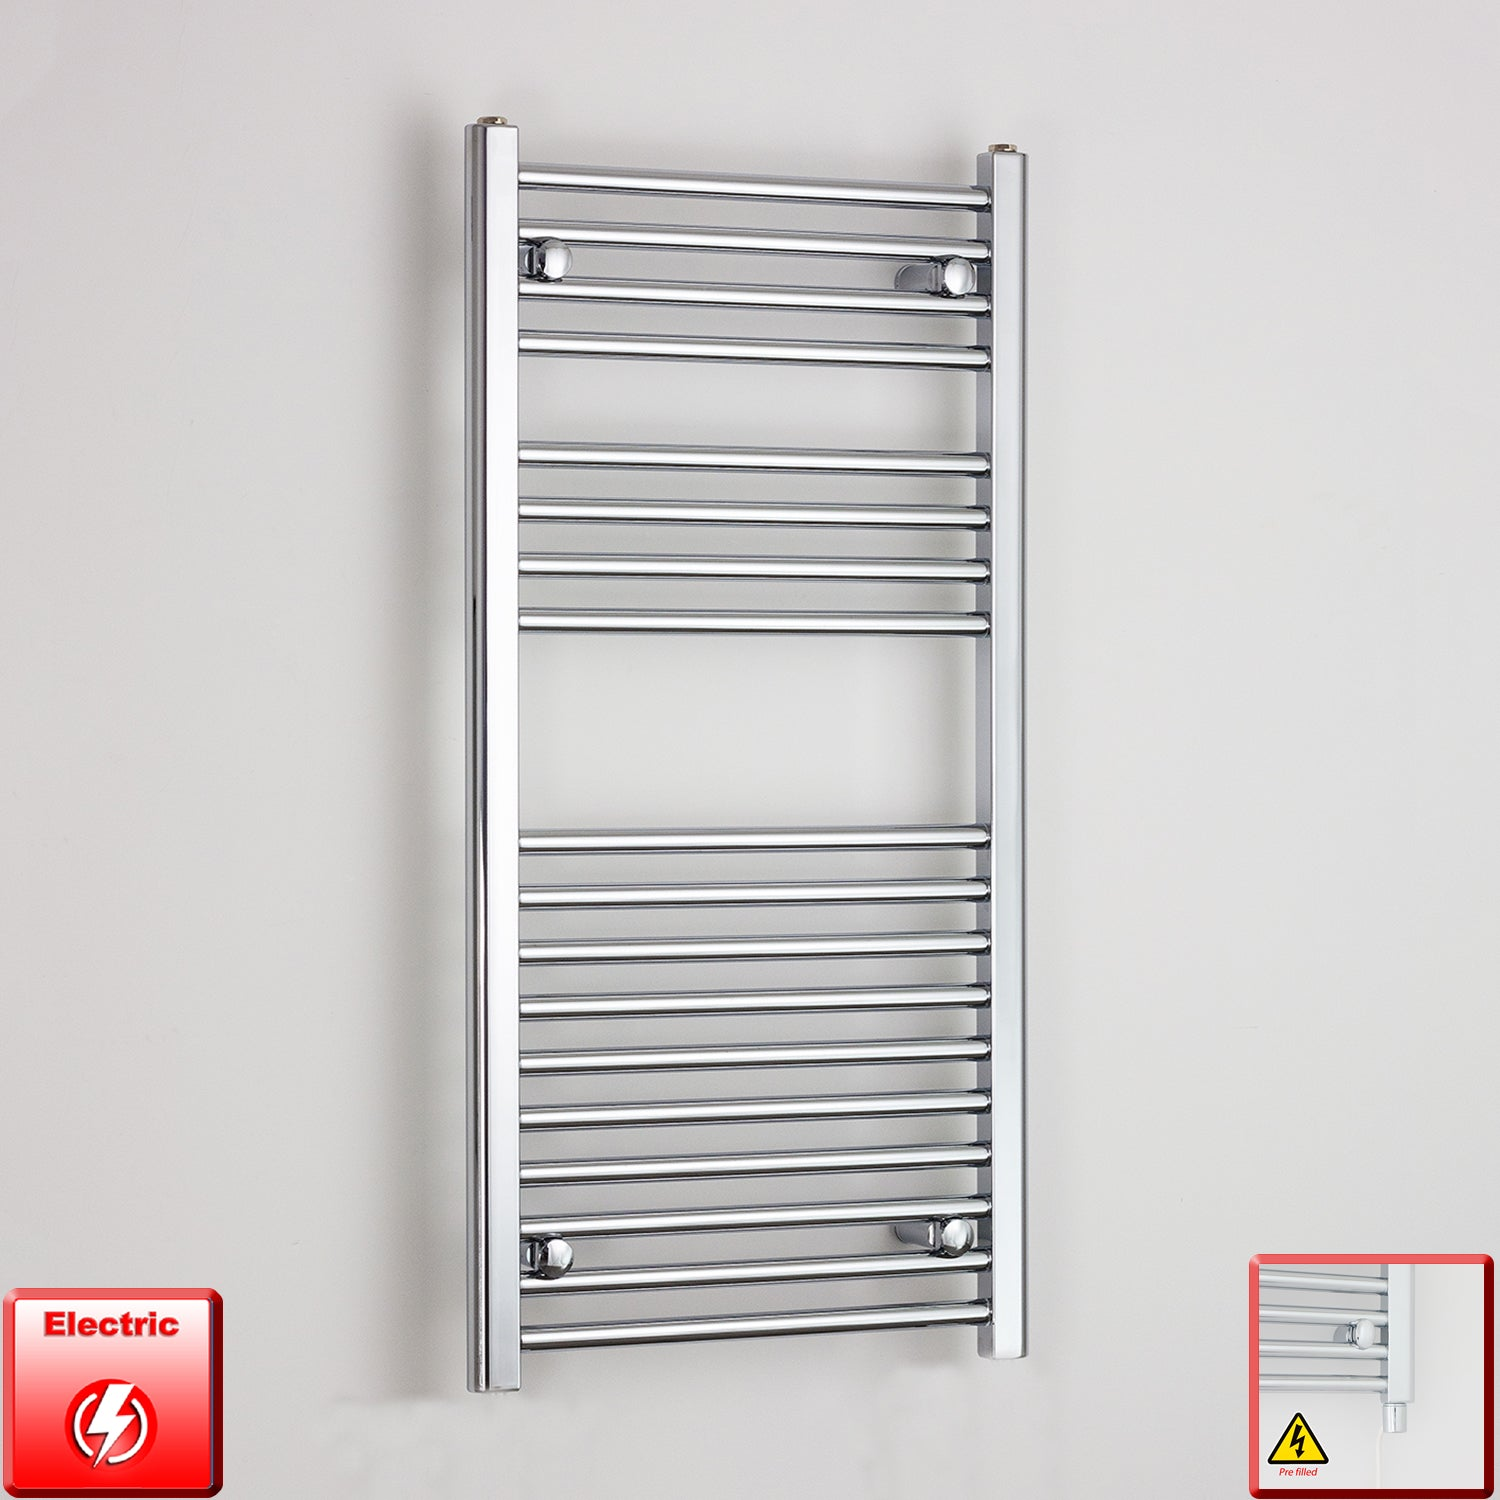 600mm Wide 1000mm High Flat Or Curved Chrome Pre-Filled Electric Heated Towel Rail Radiator HTR,Straight / Single Heat Element